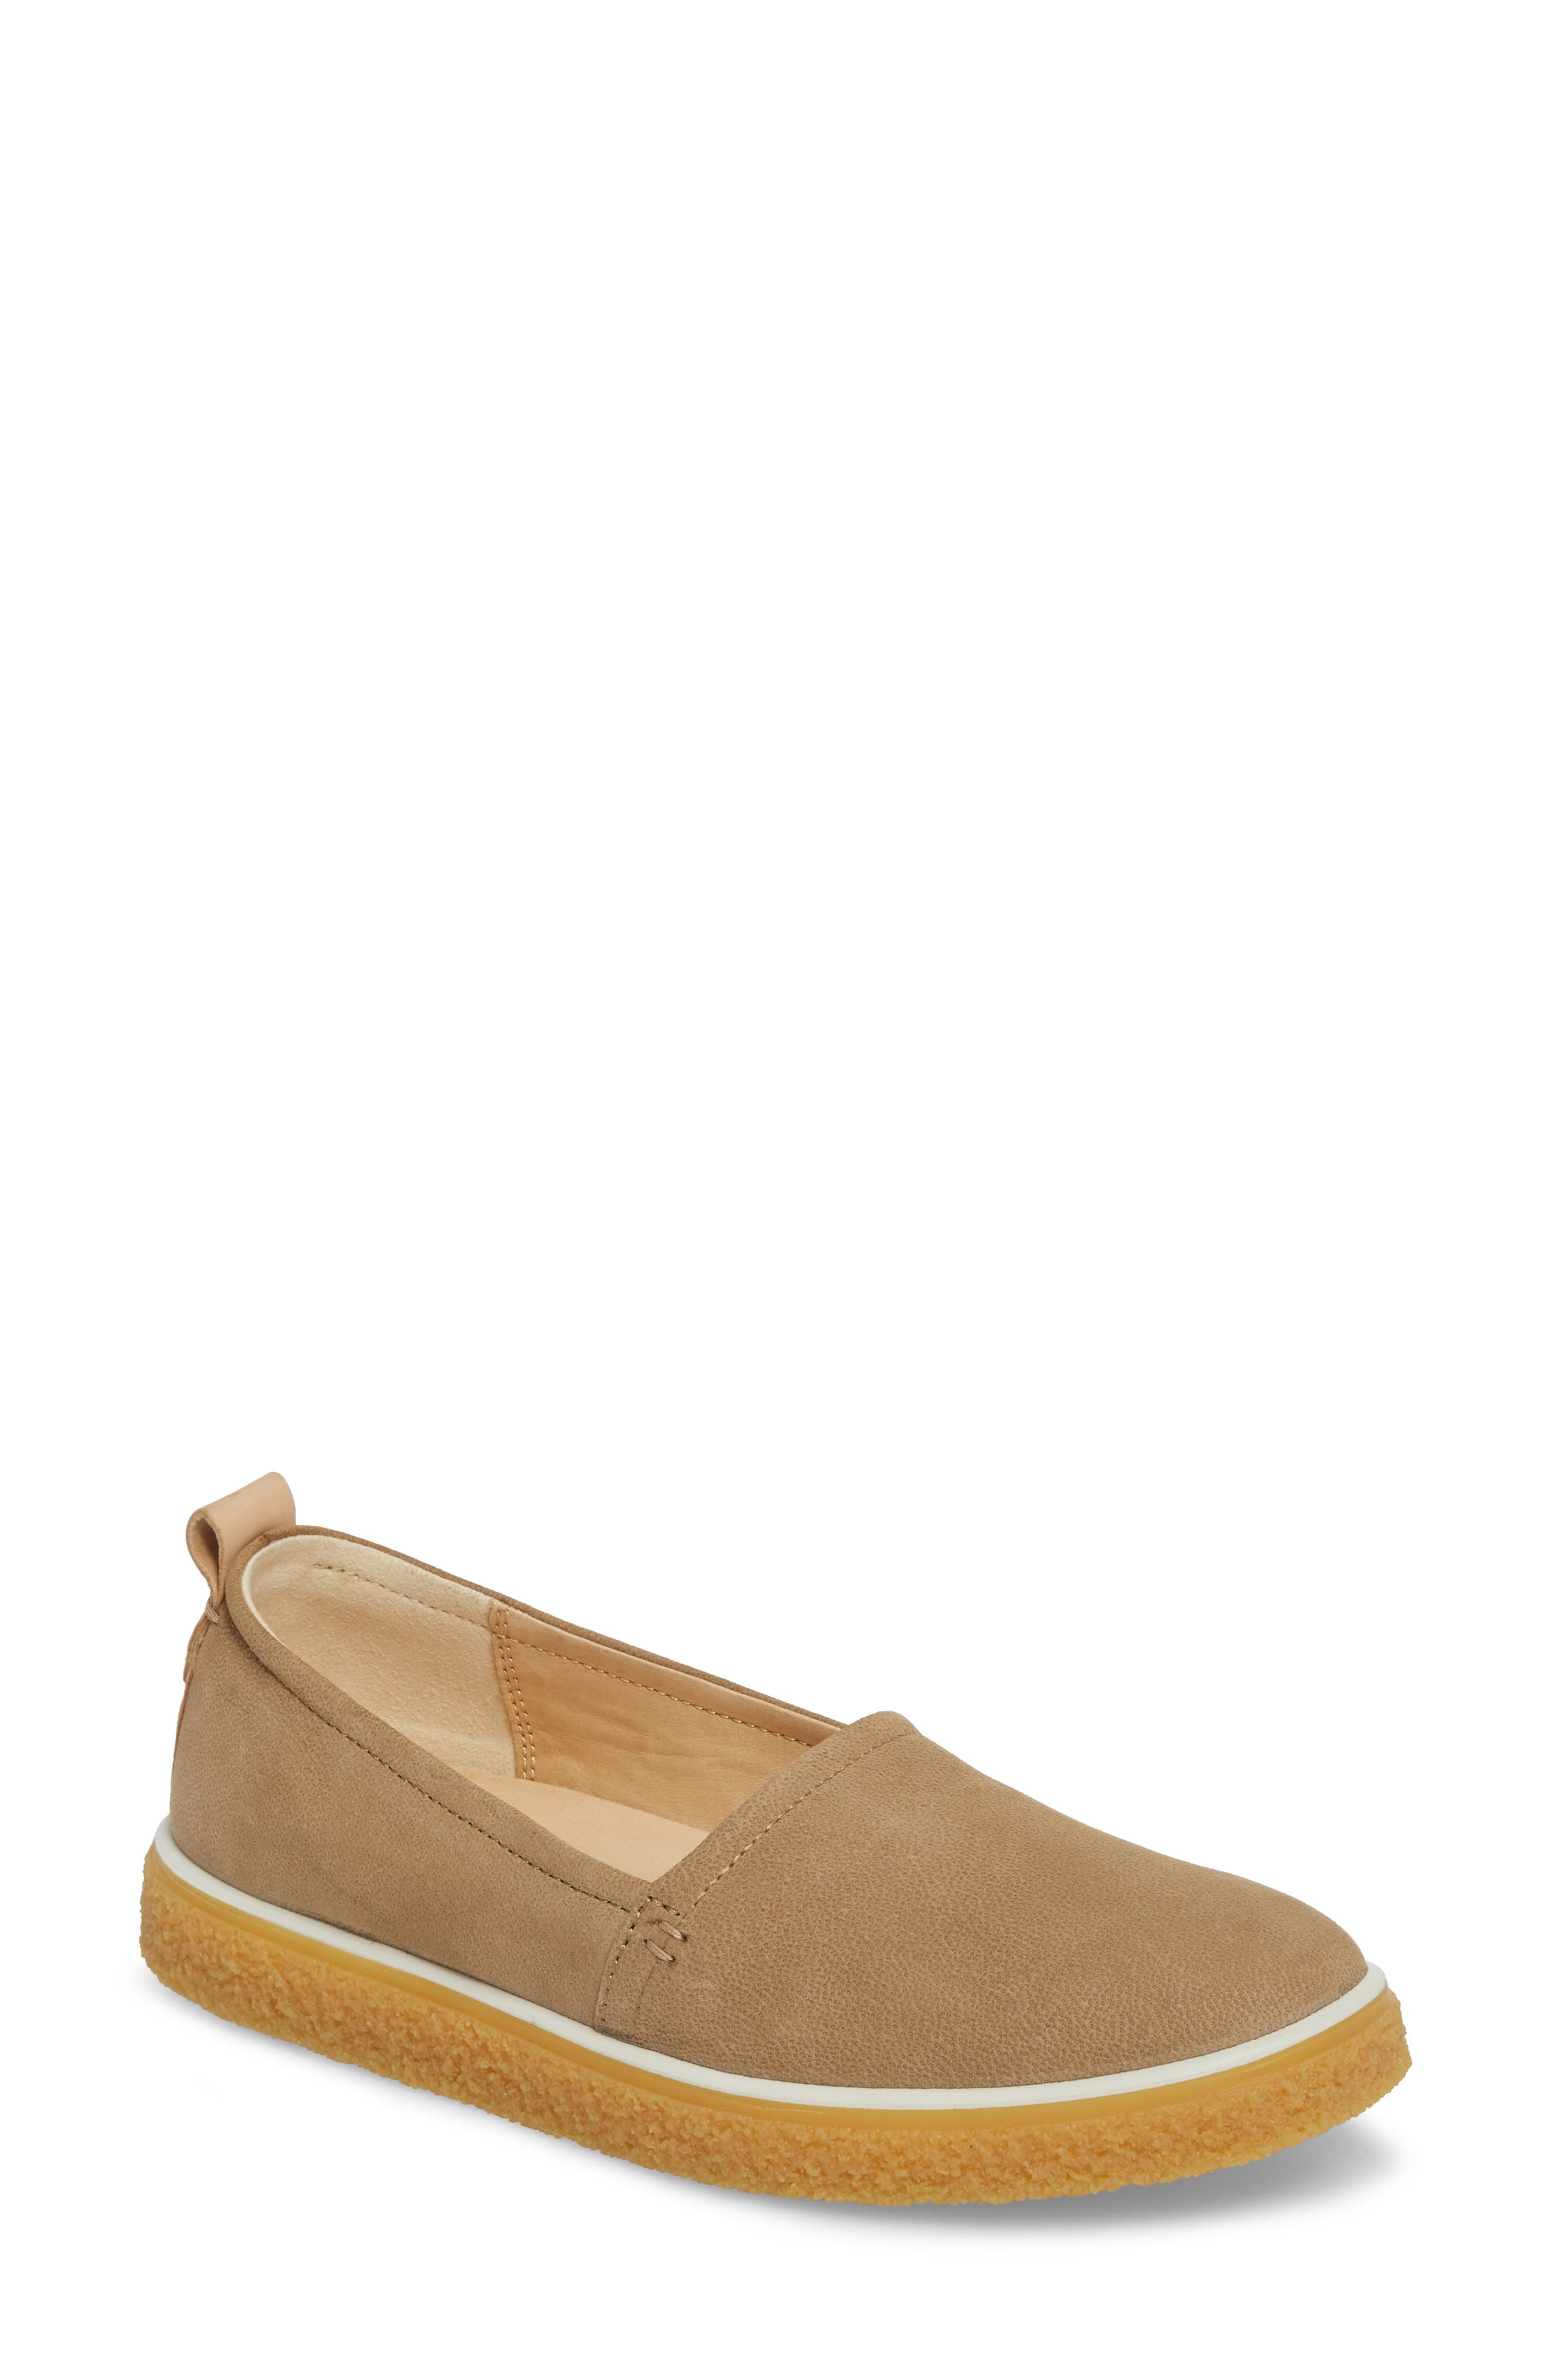 Crepetray Slip-On,                             Main thumbnail 1, color,                             Brown Leather